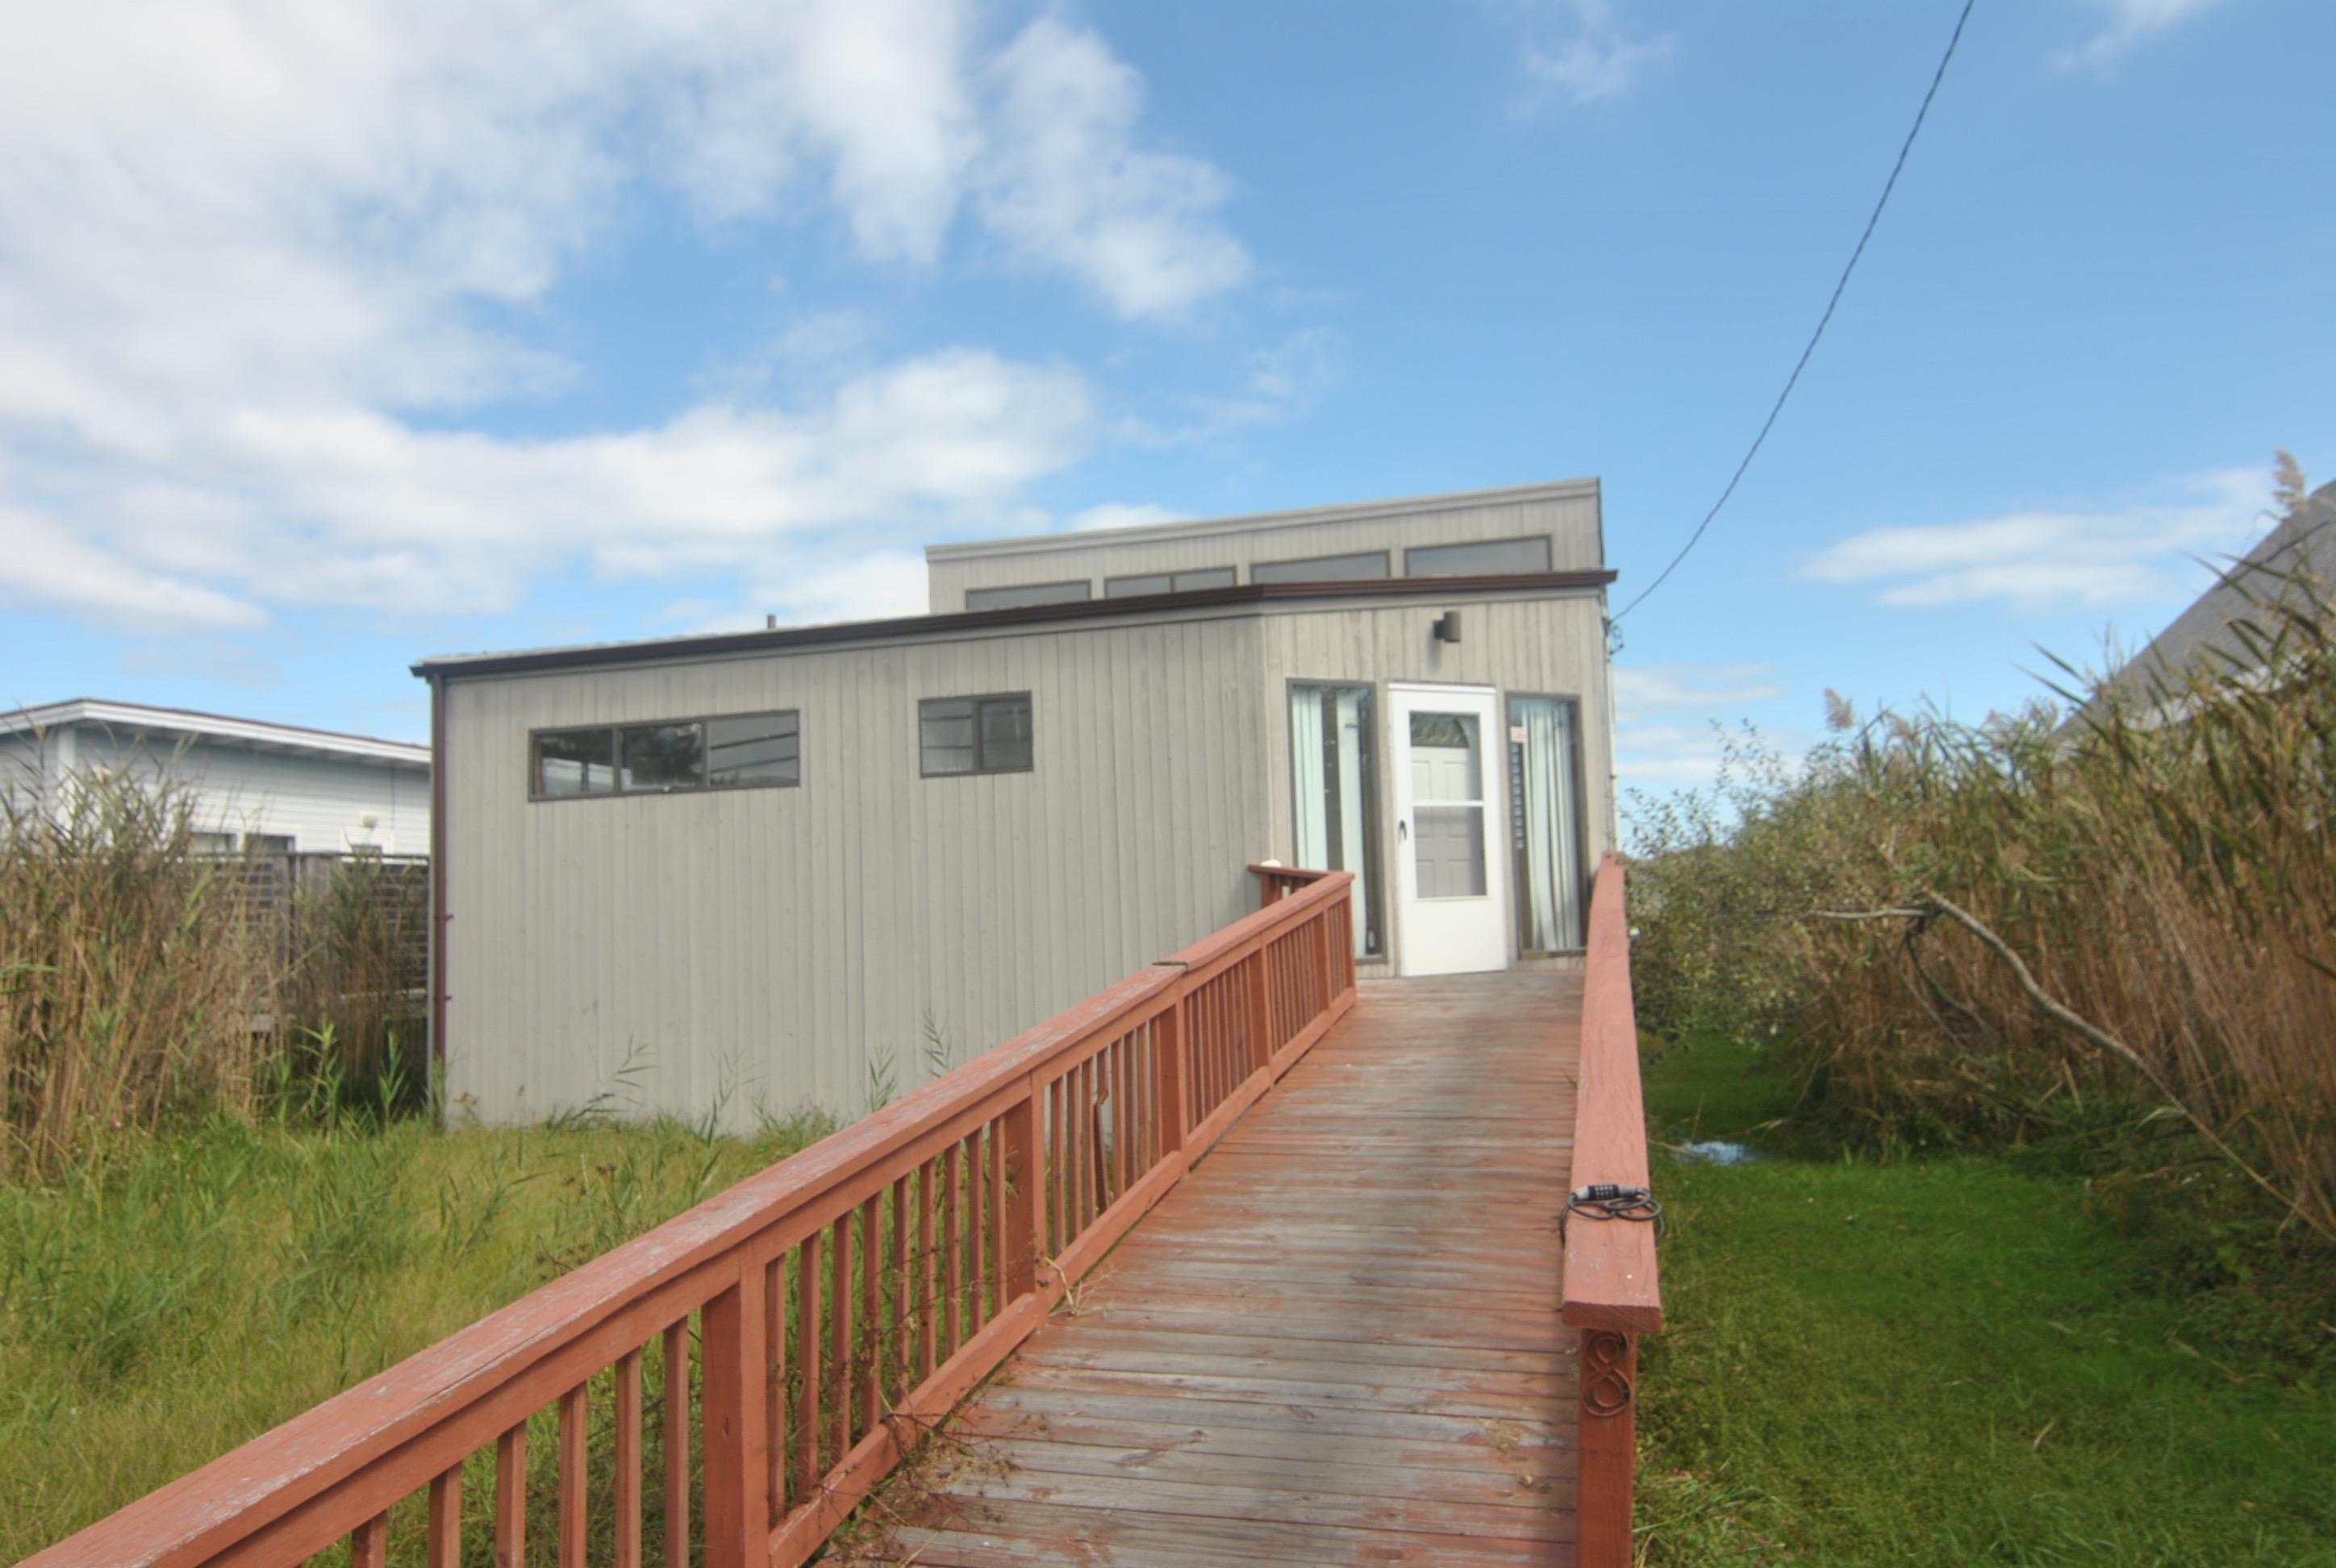 3 Bedroom 2 bath home with open living, dining, and kitchen with high ceilings. Outdoor Shower.